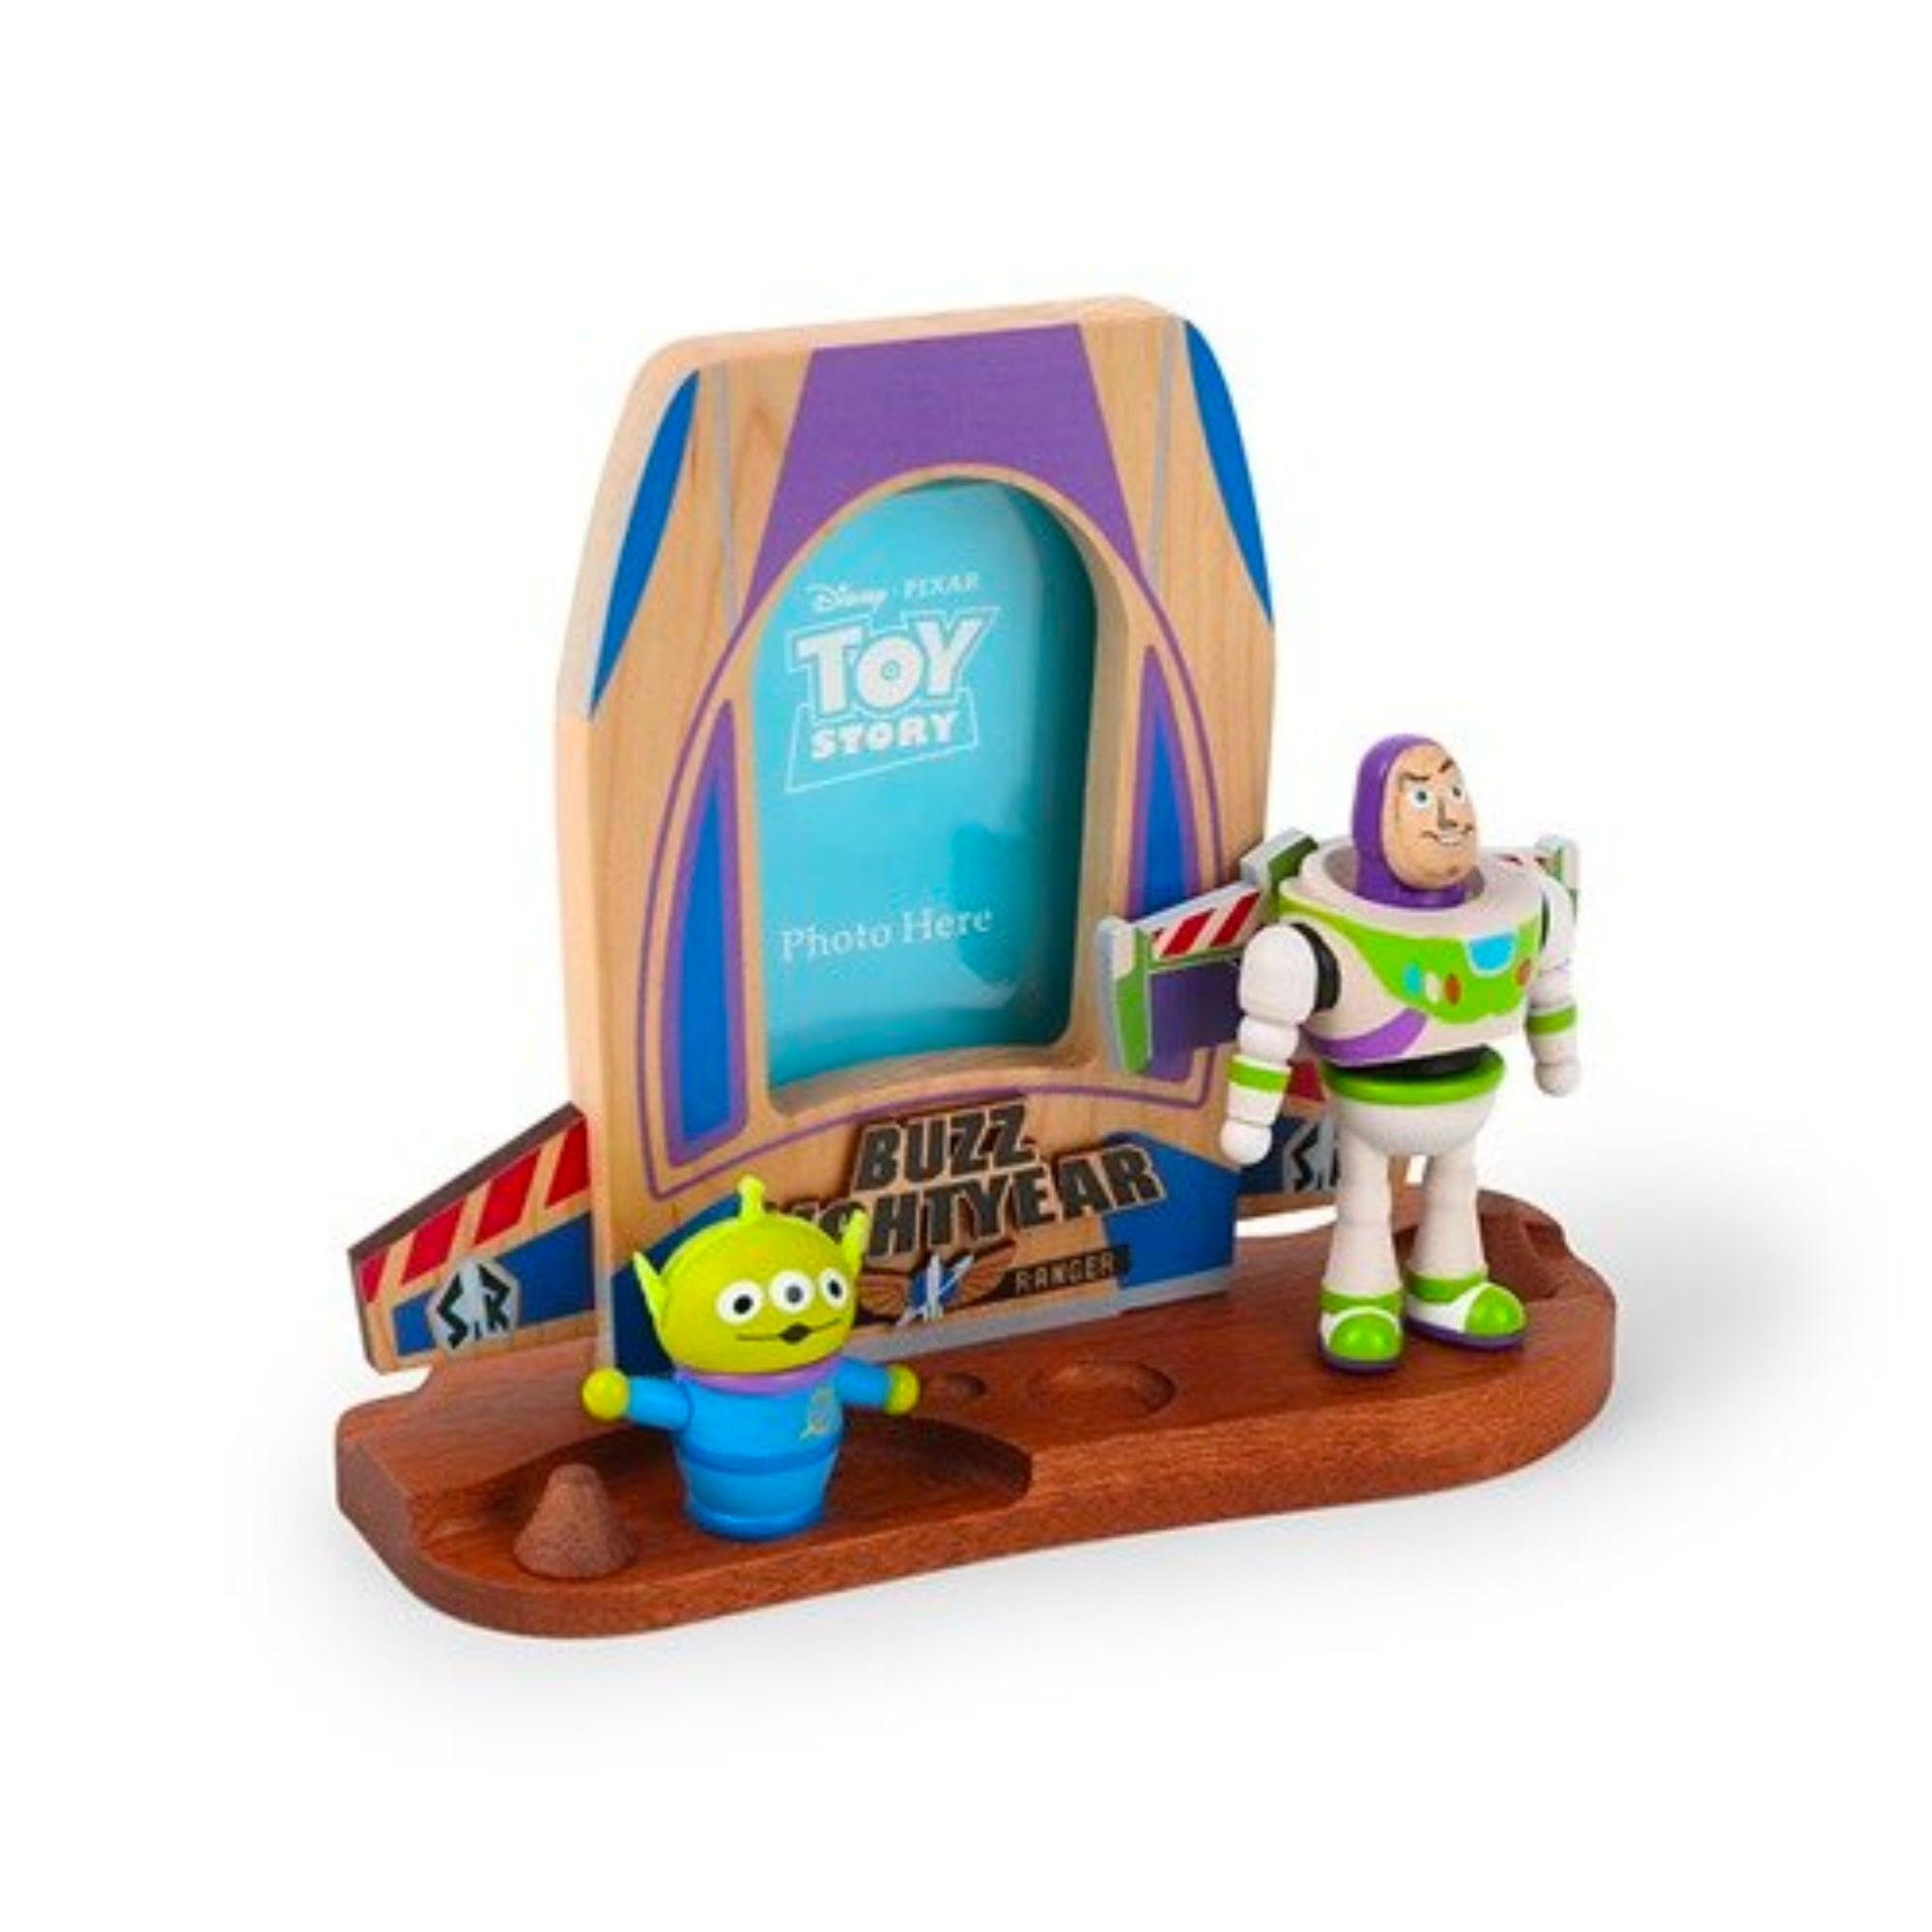 Wooderful Life photo frame, buzz lightyear